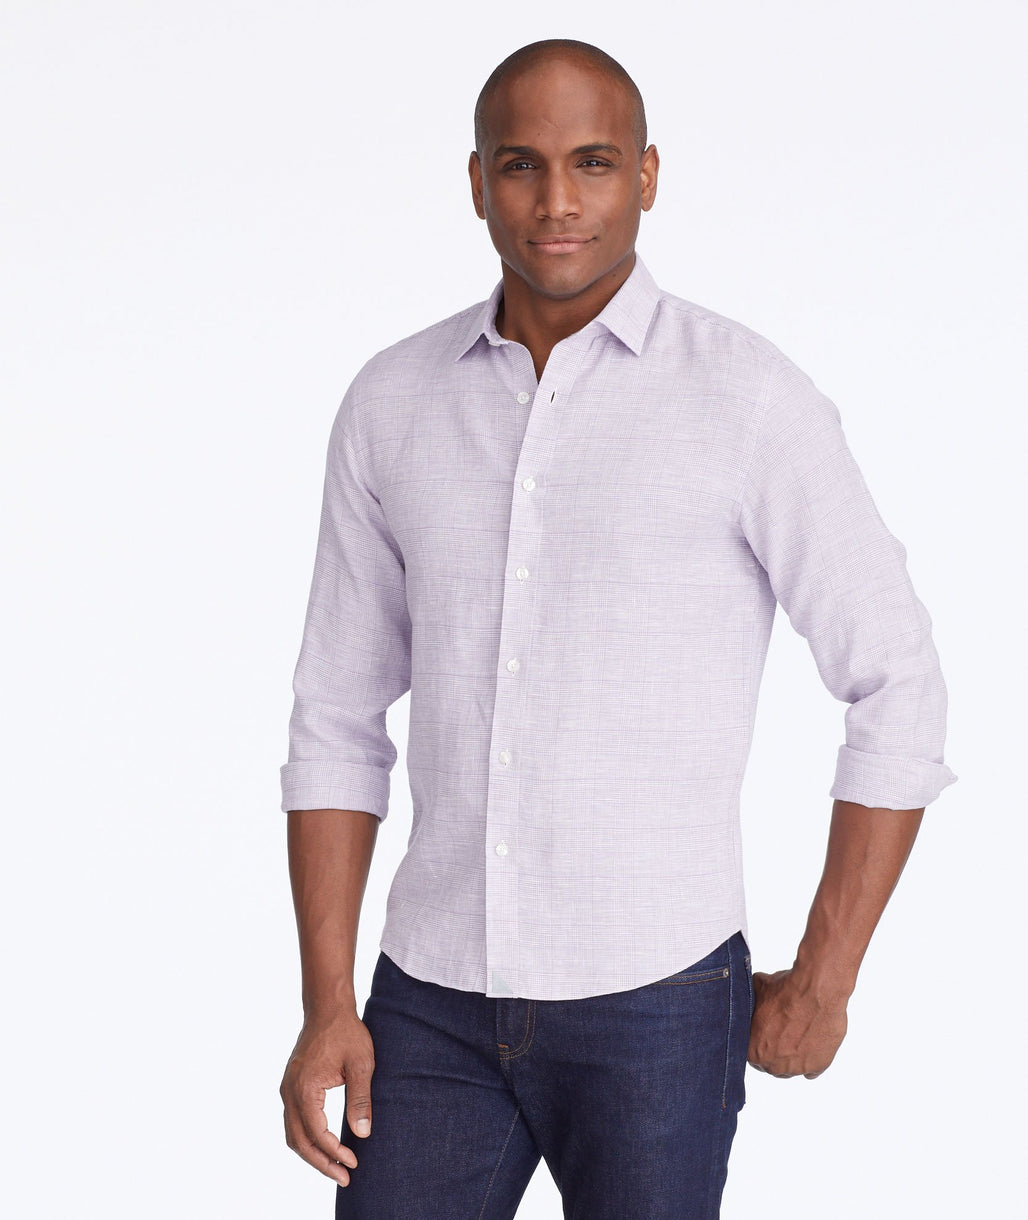 Model wearing a Purple Wrinkle-Resistant Linen Torontel Shirt